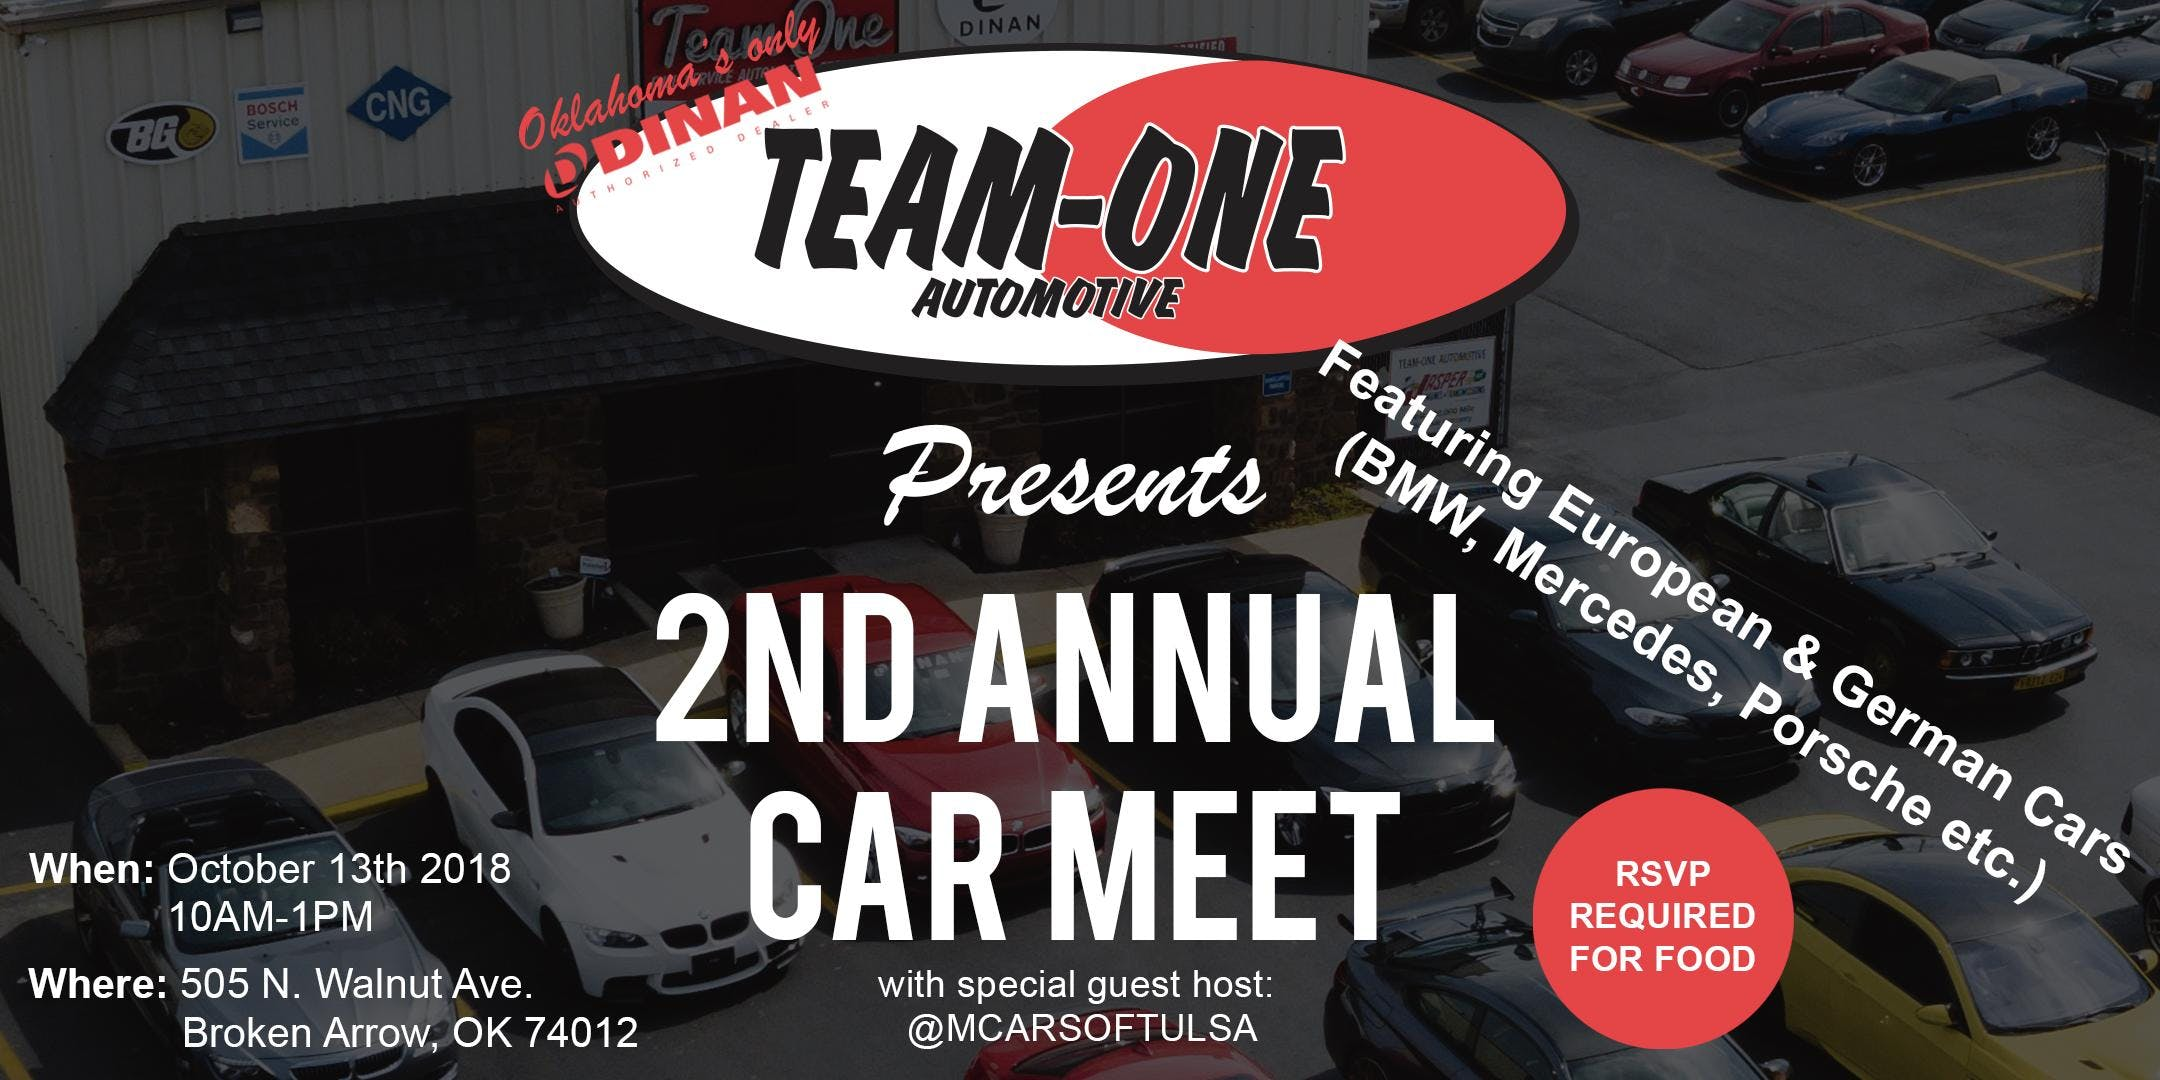 2nd Annual Team One Automotive Fall German Euro Car Meet 13 Oct 2018